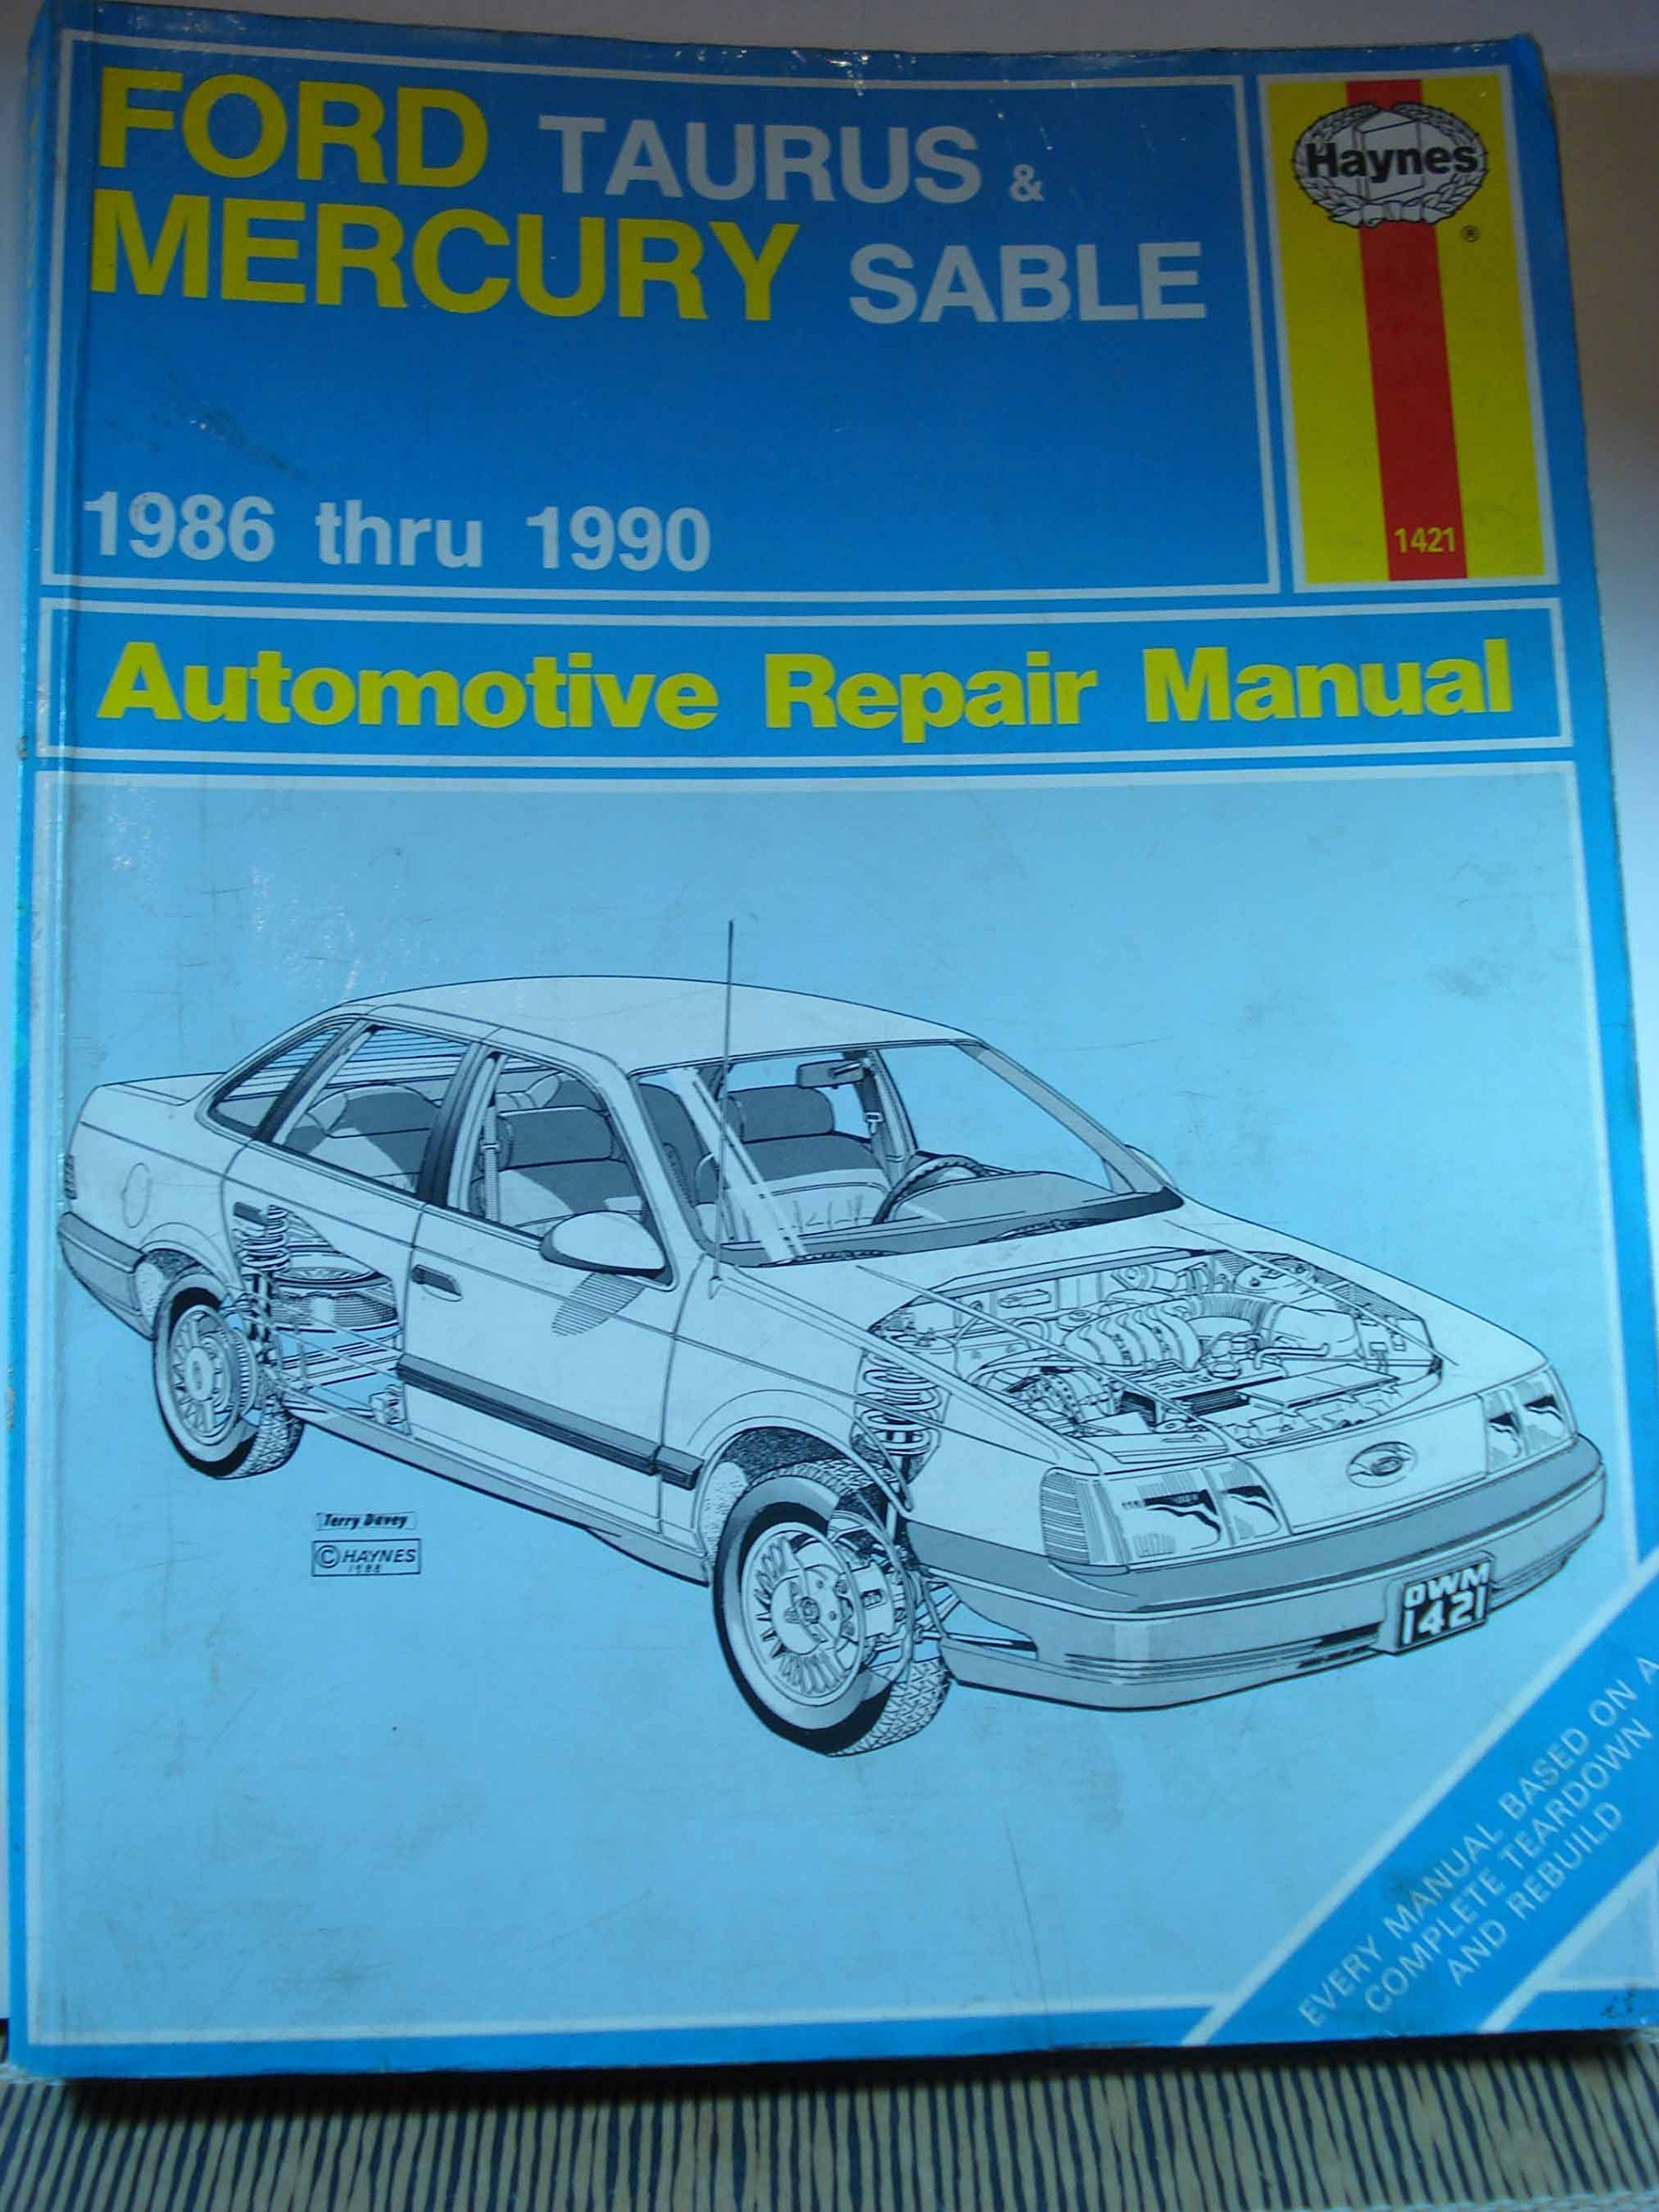 Ford Taurus & Mercury Sable 1986 thru 1990 Automotive Repair Manual (Haynes  Automotive Repair Manual Series): Bob Henderson, John H. Haynes:  9781850107095: ...